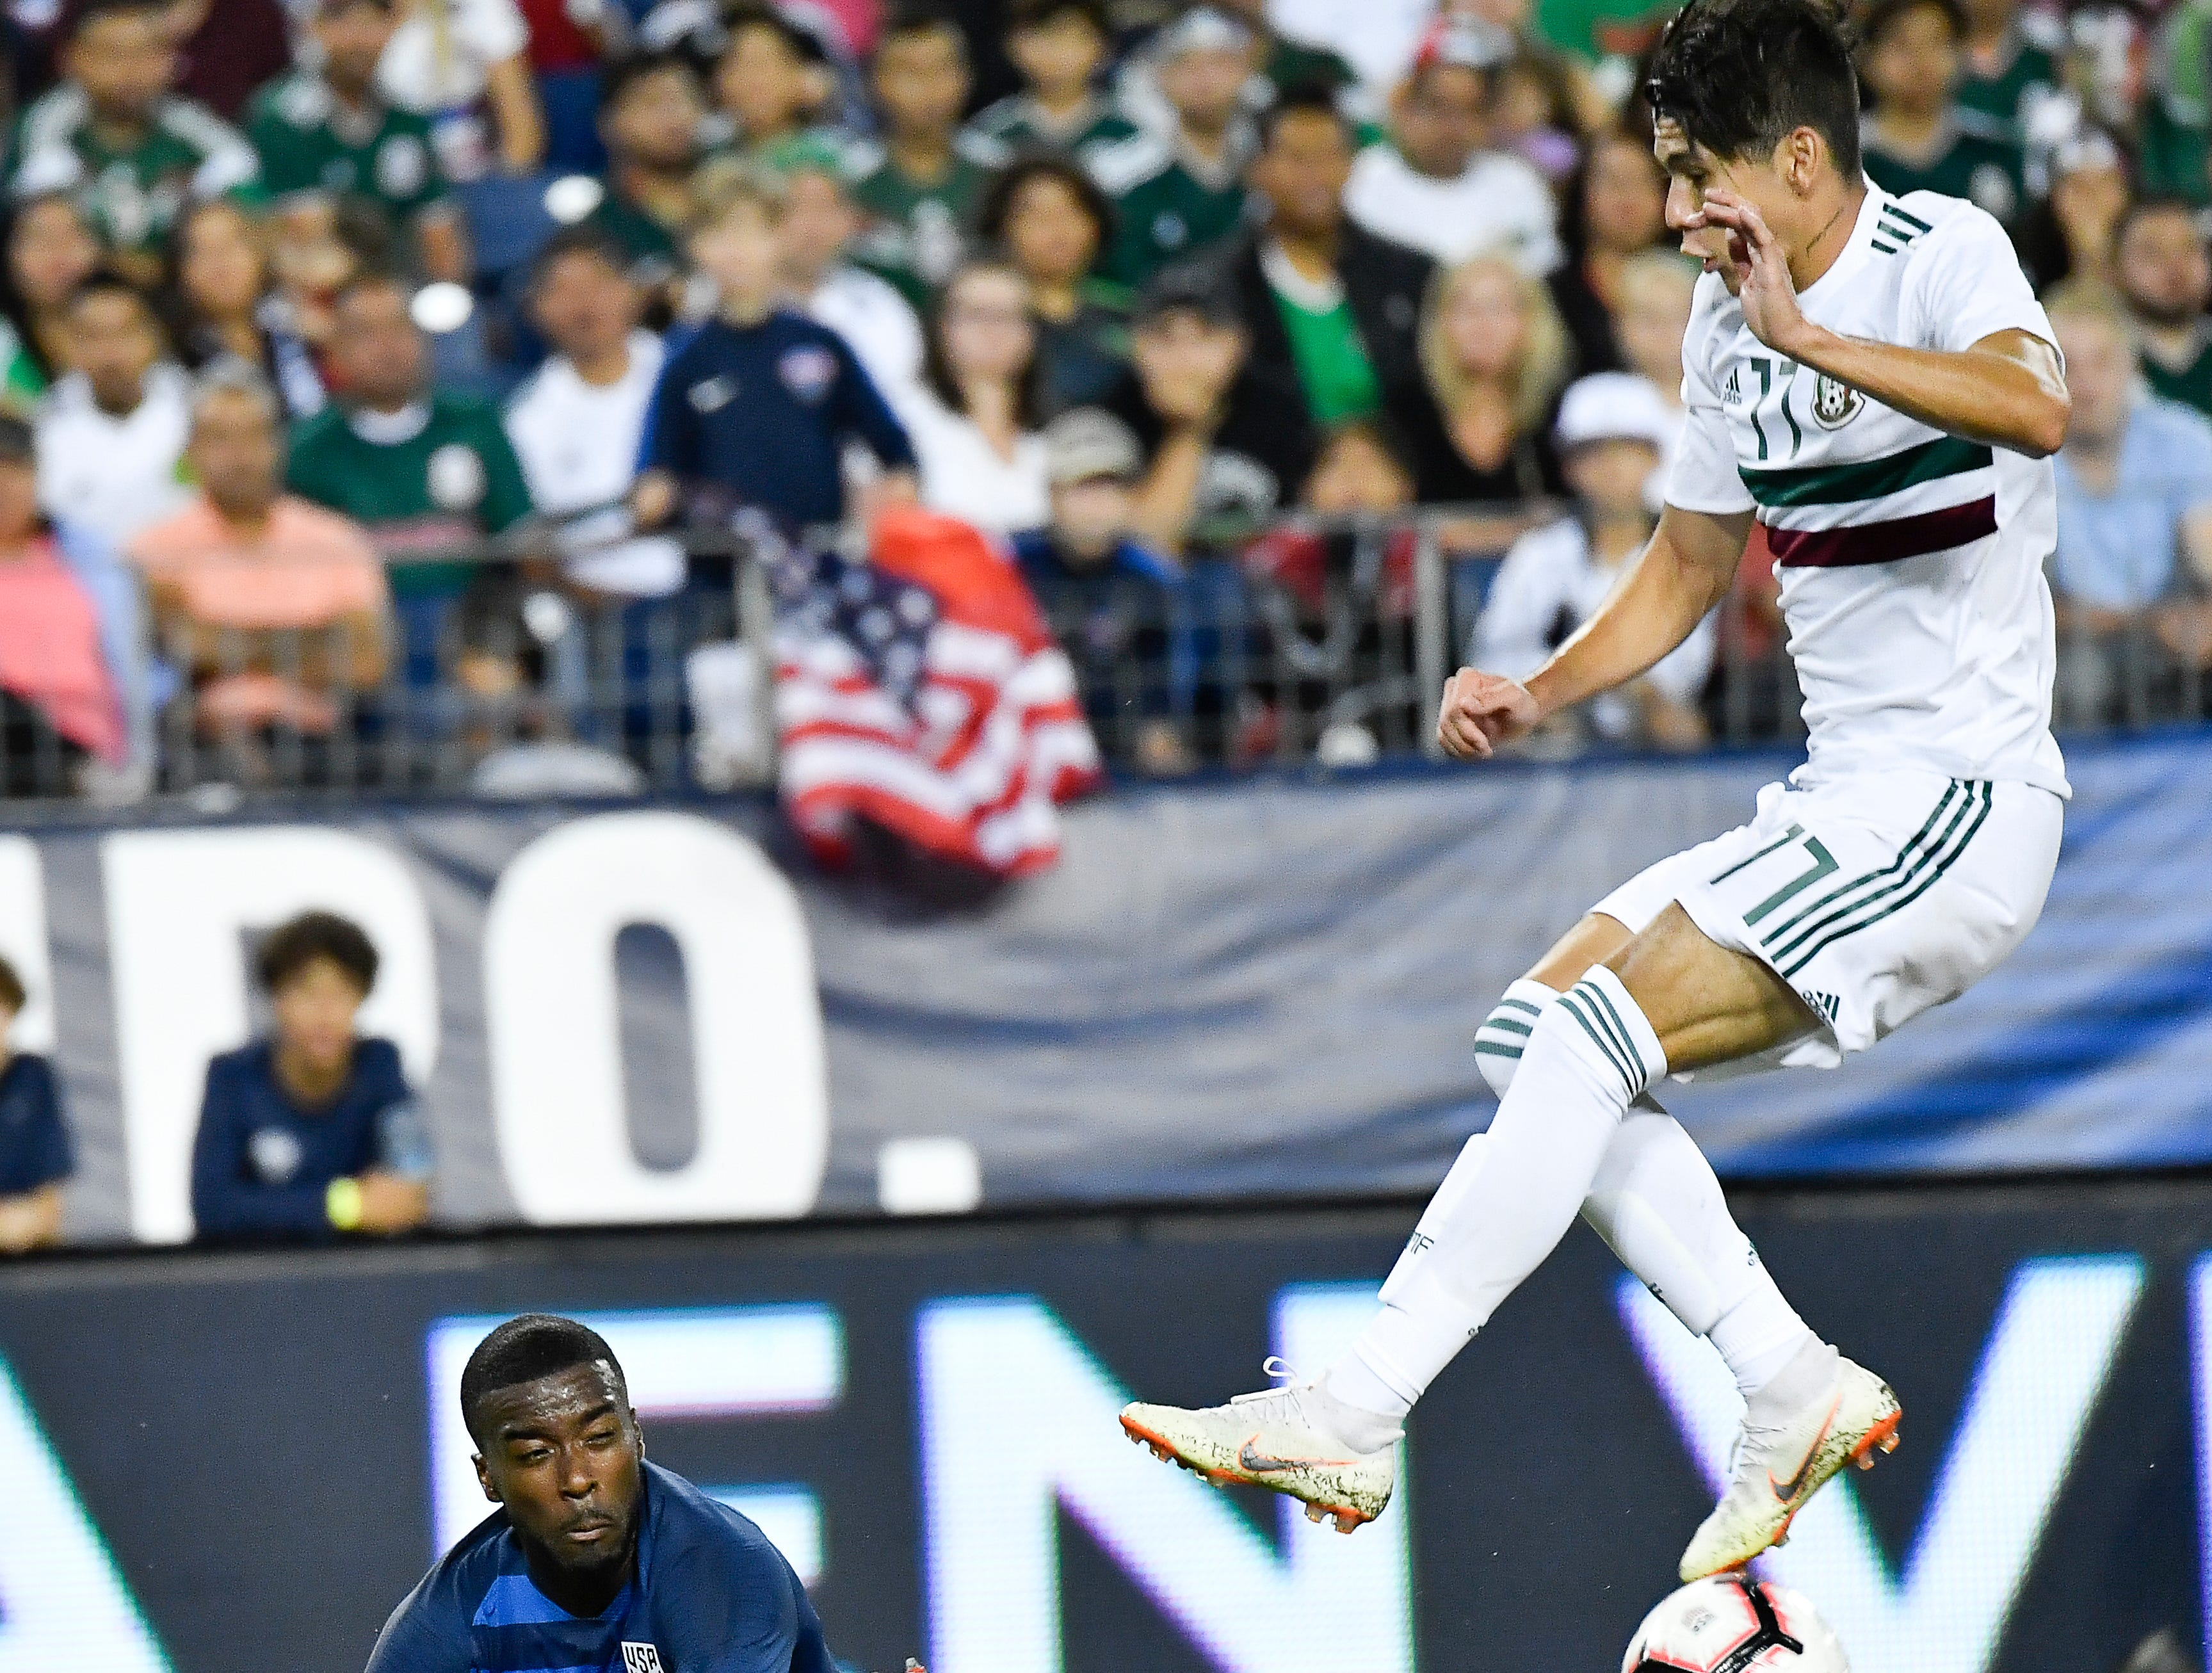 Mexico midfielder Elias Hernandez (11) takes the ball from USA defender Shaq Moore (19) during the second half fo their game at Nissan Stadium Tuesday, Sept. 11, 2018, in Nashville, Tenn.